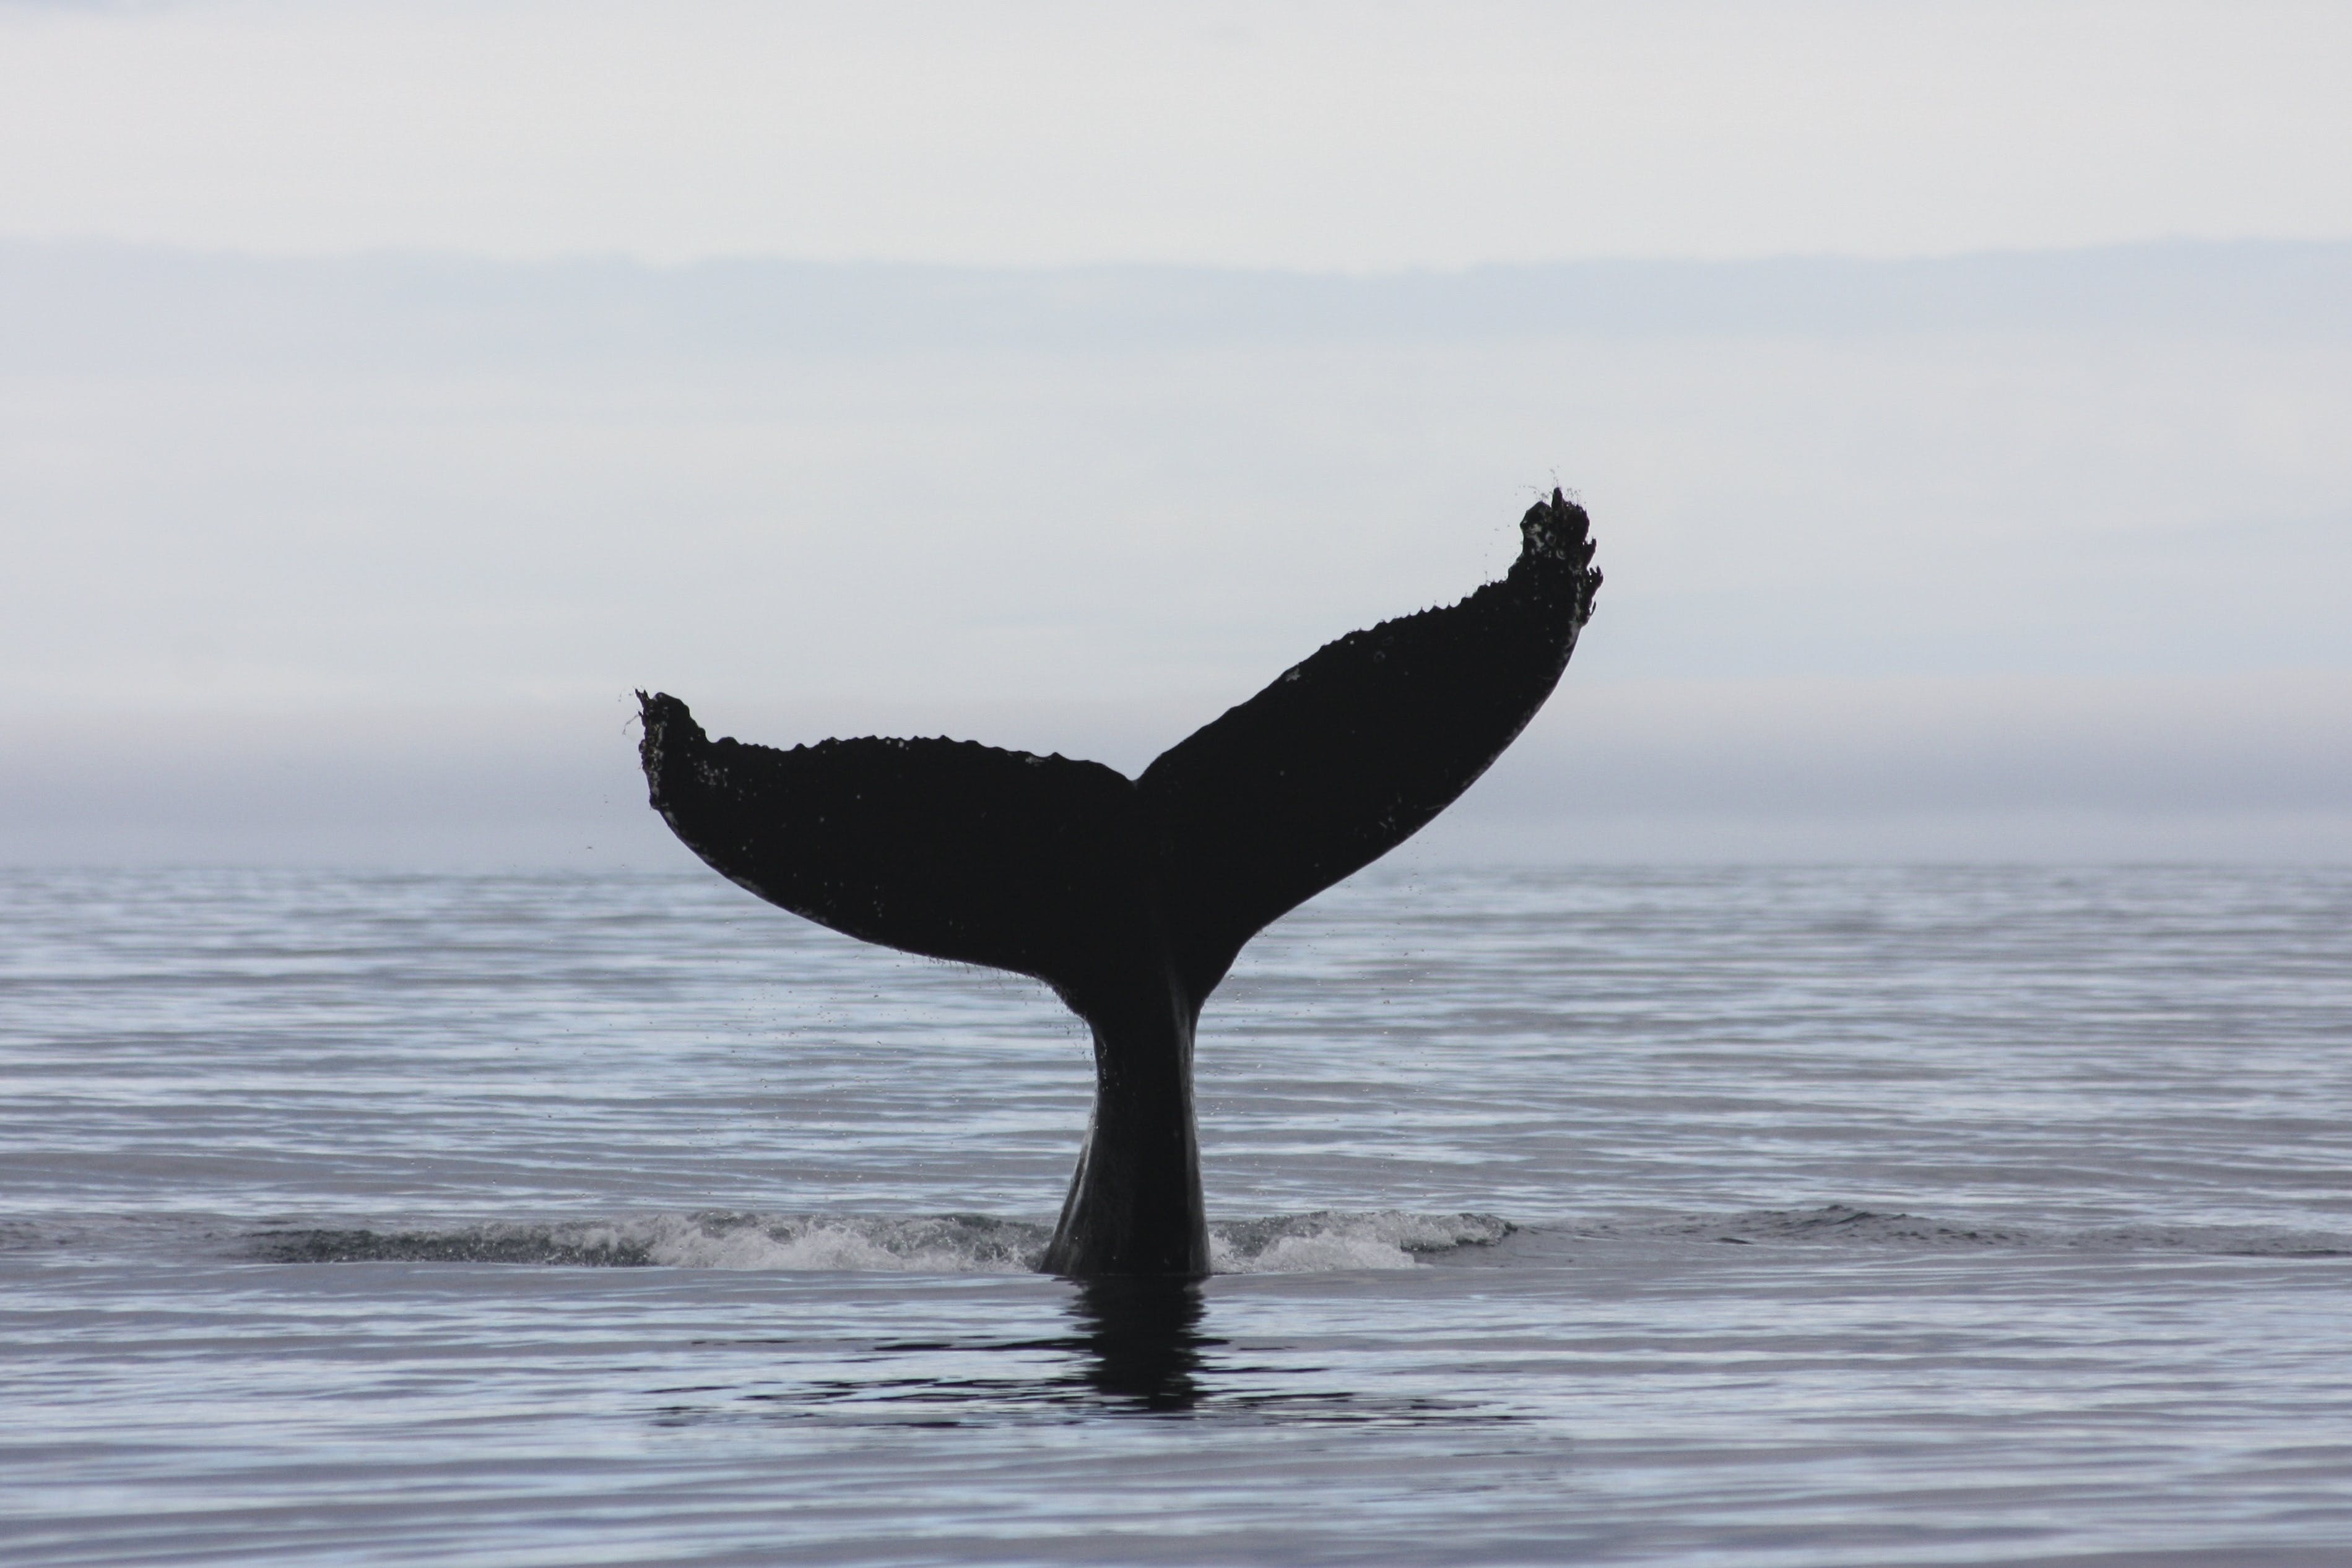 Whale Watching & Bird Watching at Eyjafjordur